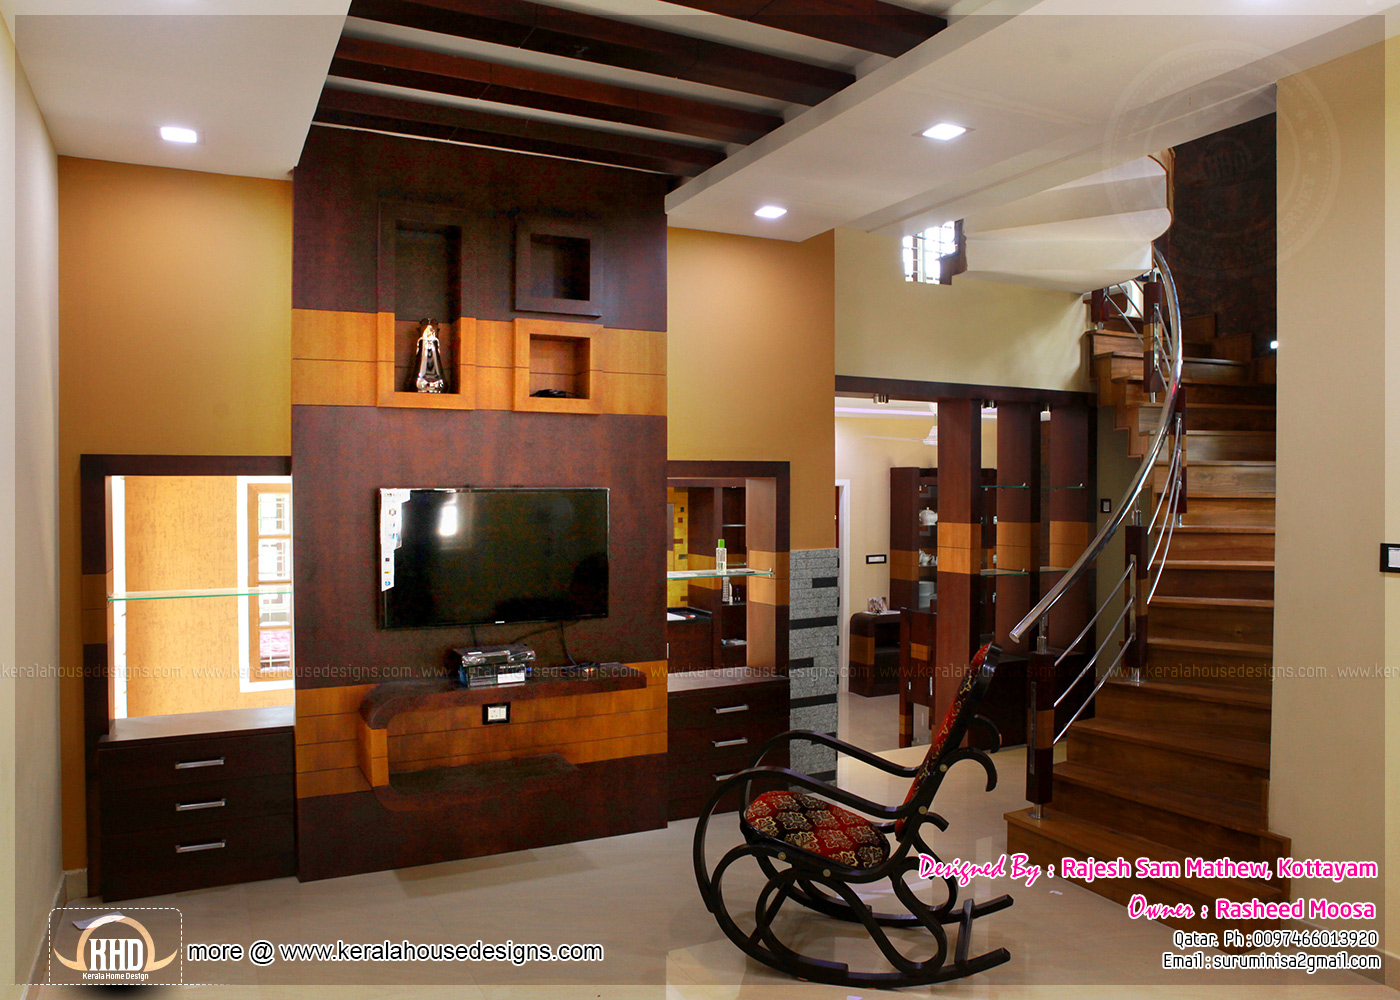 Kerala interior design with photos kerala home design for In side house design